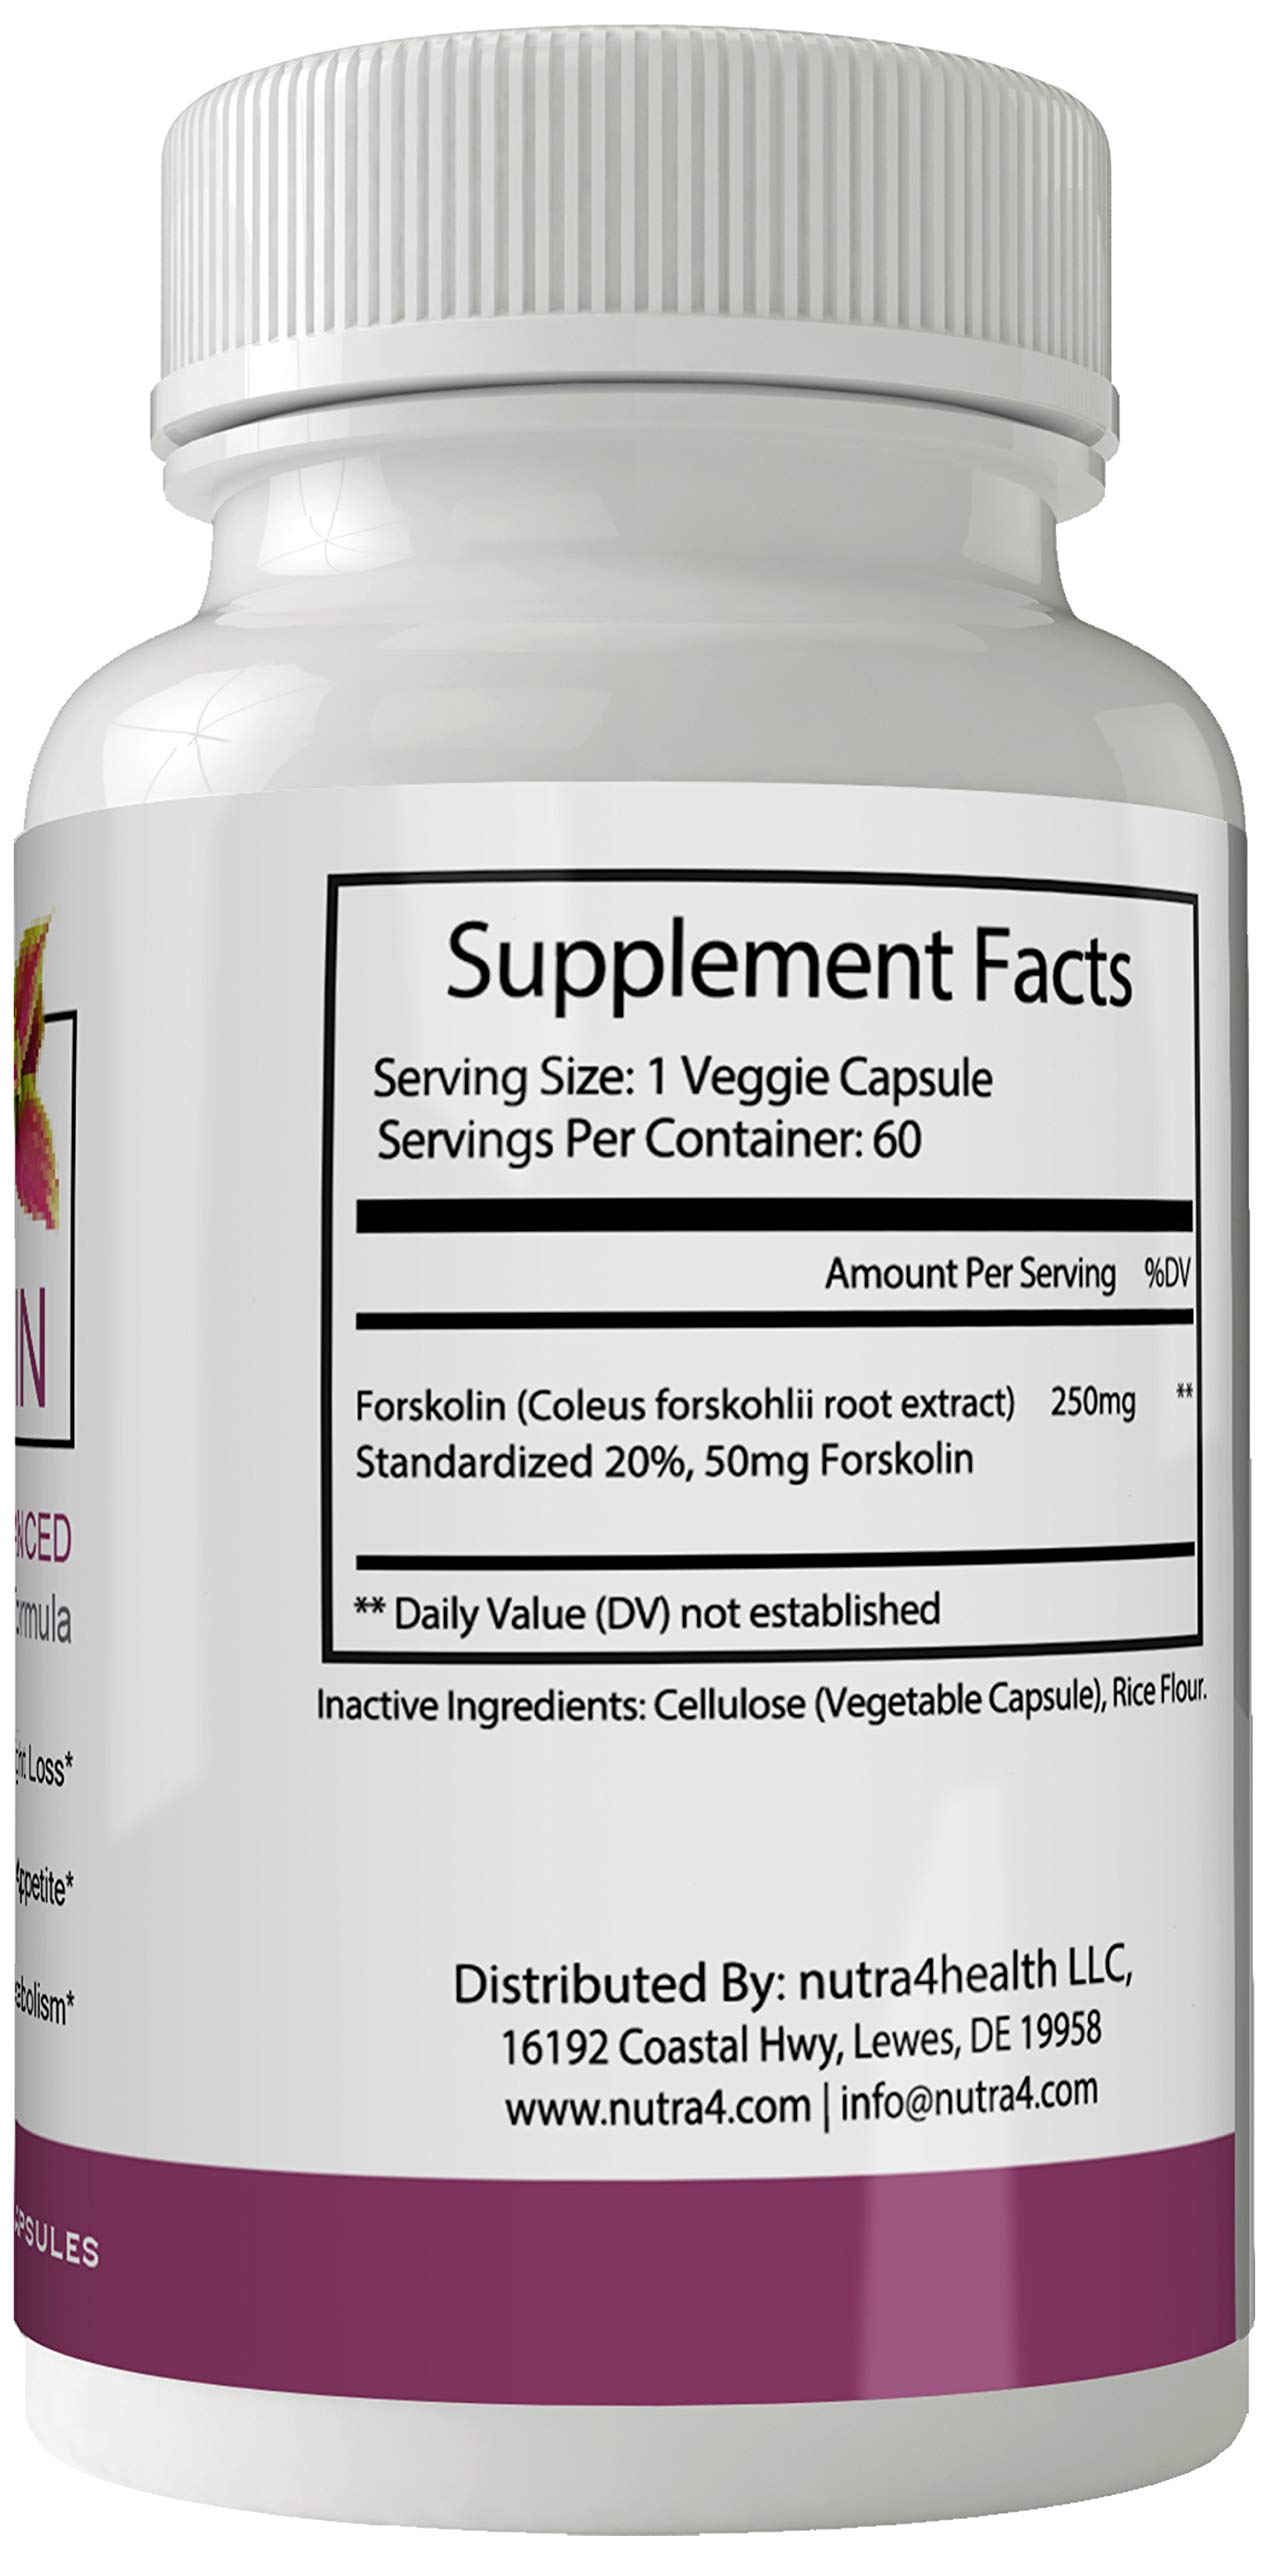 Italic Forskolin Supplement for Weight Loss Capsules with Natural High Quality Pure Forskolin Extract Diet Pills by nutra4health LLC (Image #2)